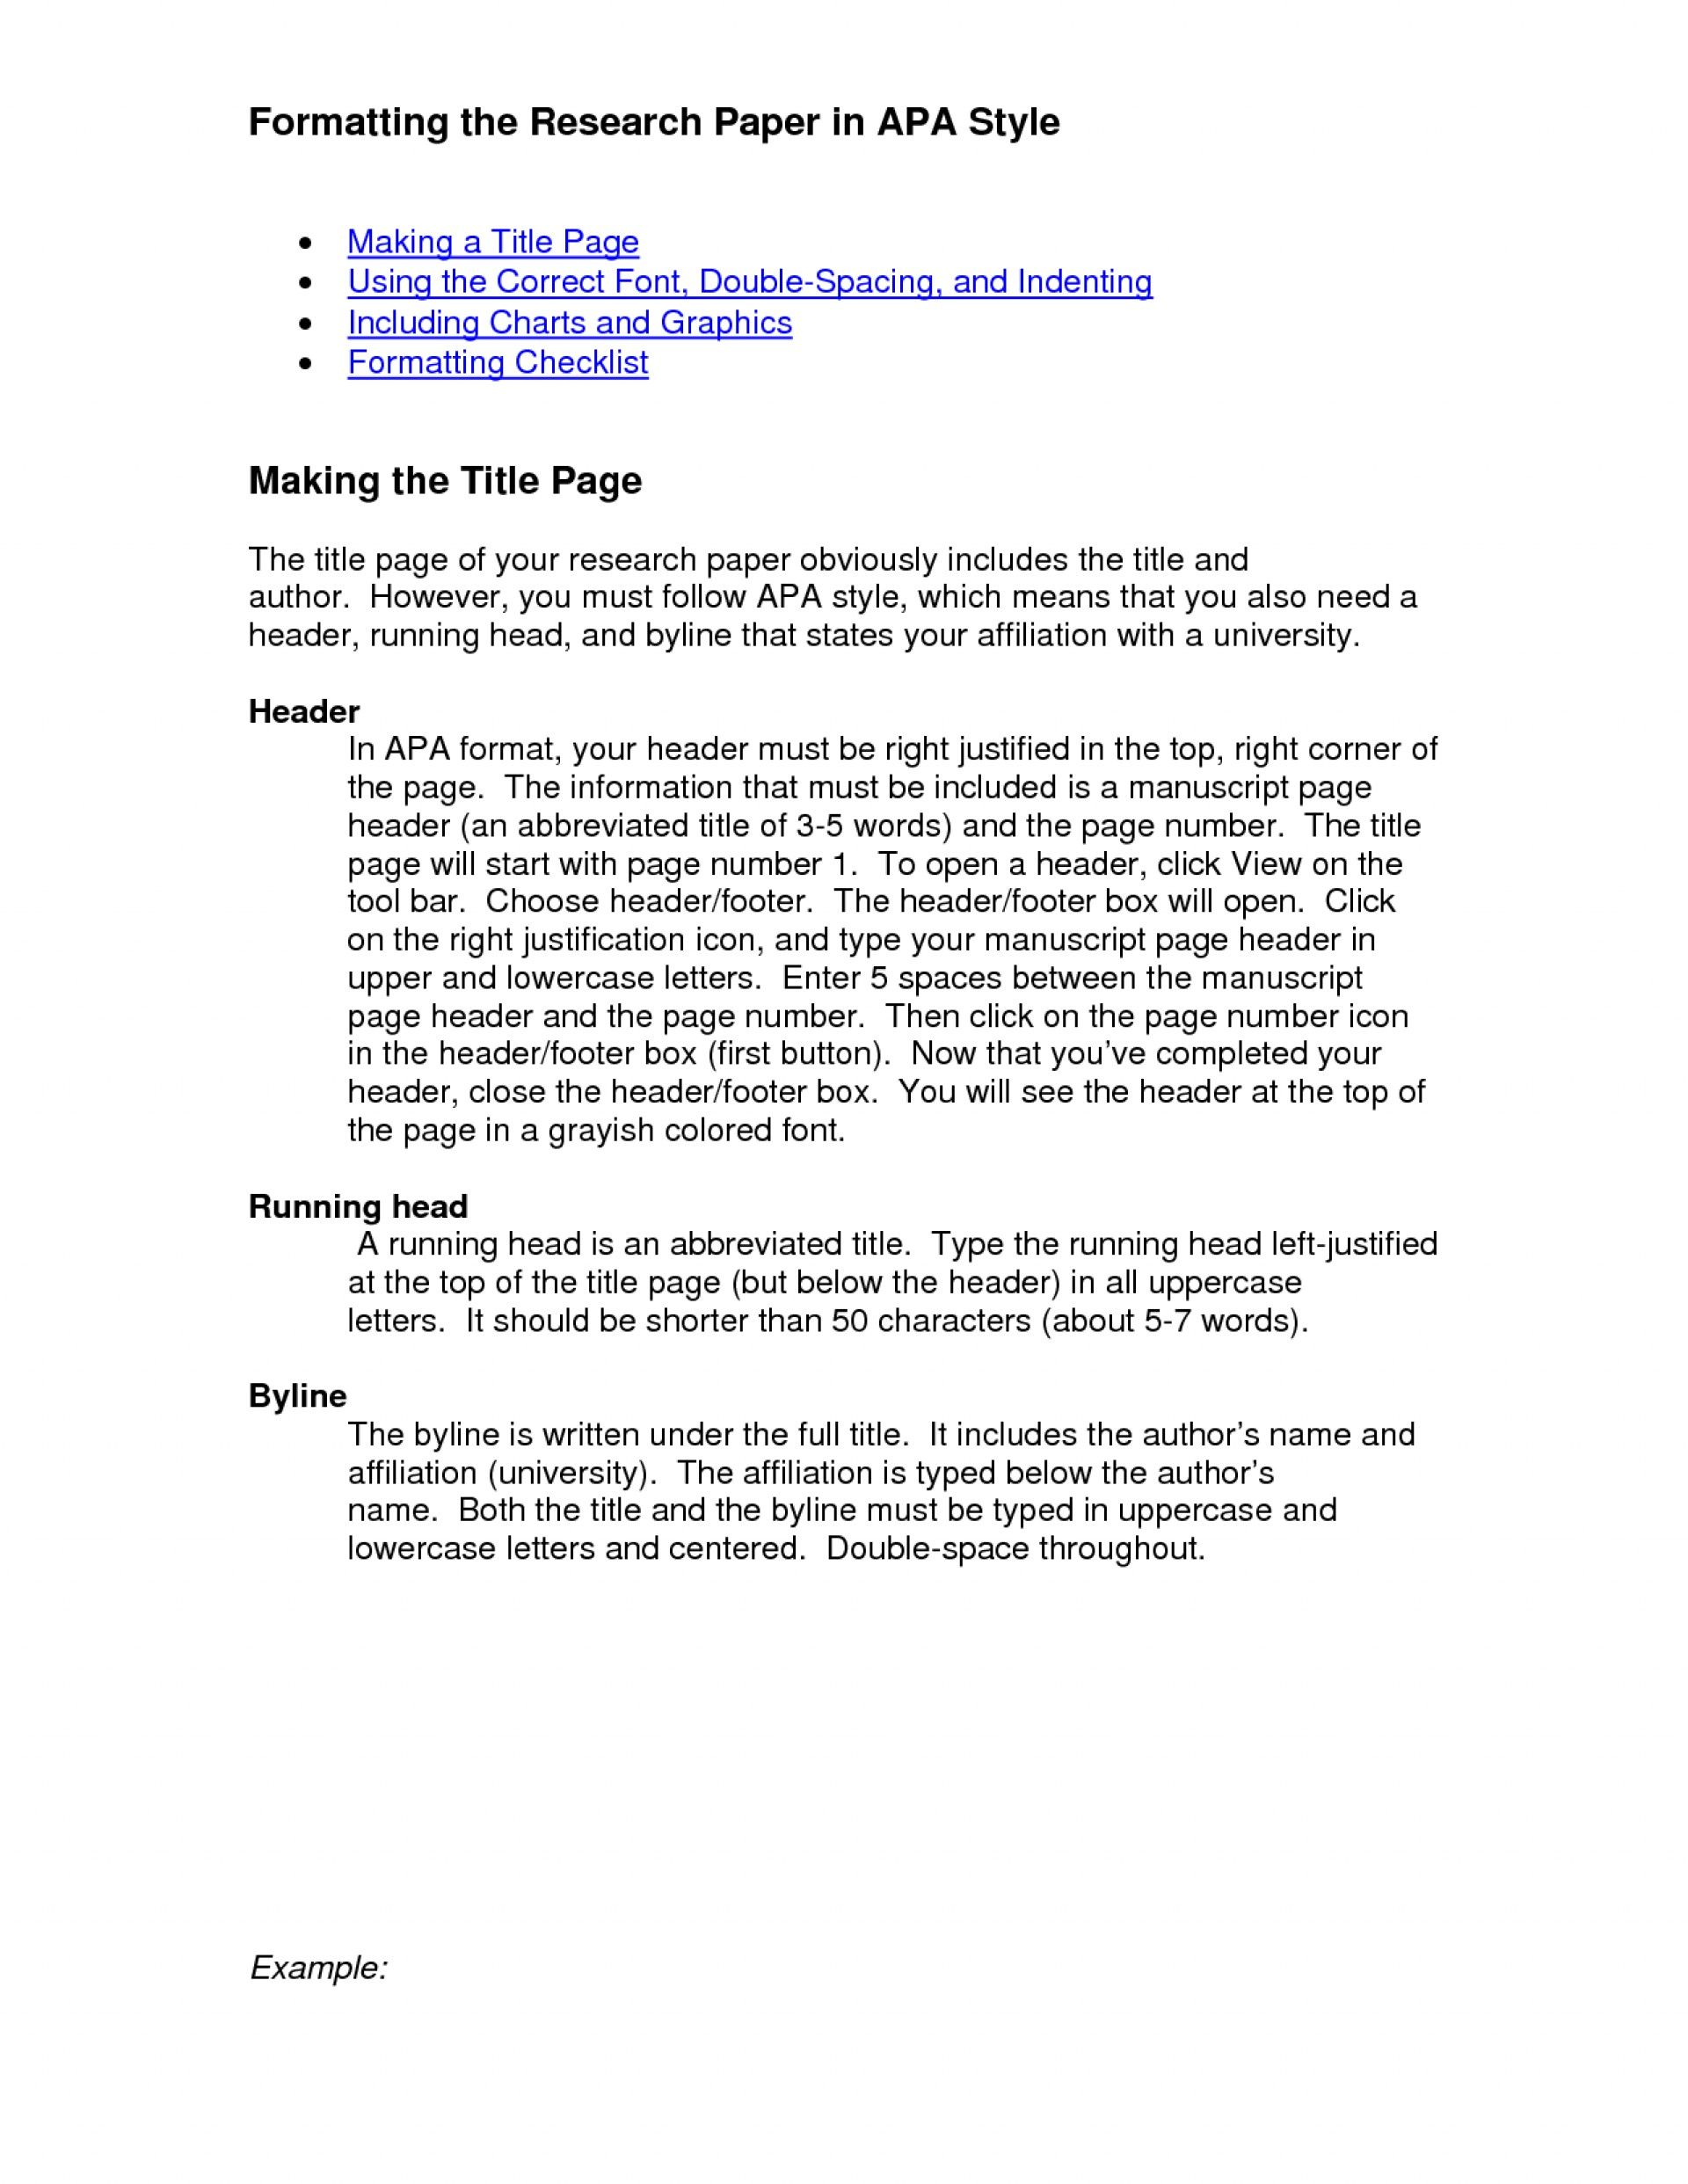 005 Research Paper 2mefq6rl5g How To Cite In Apa Fearsome A Style Write Bibliography For Format 1920